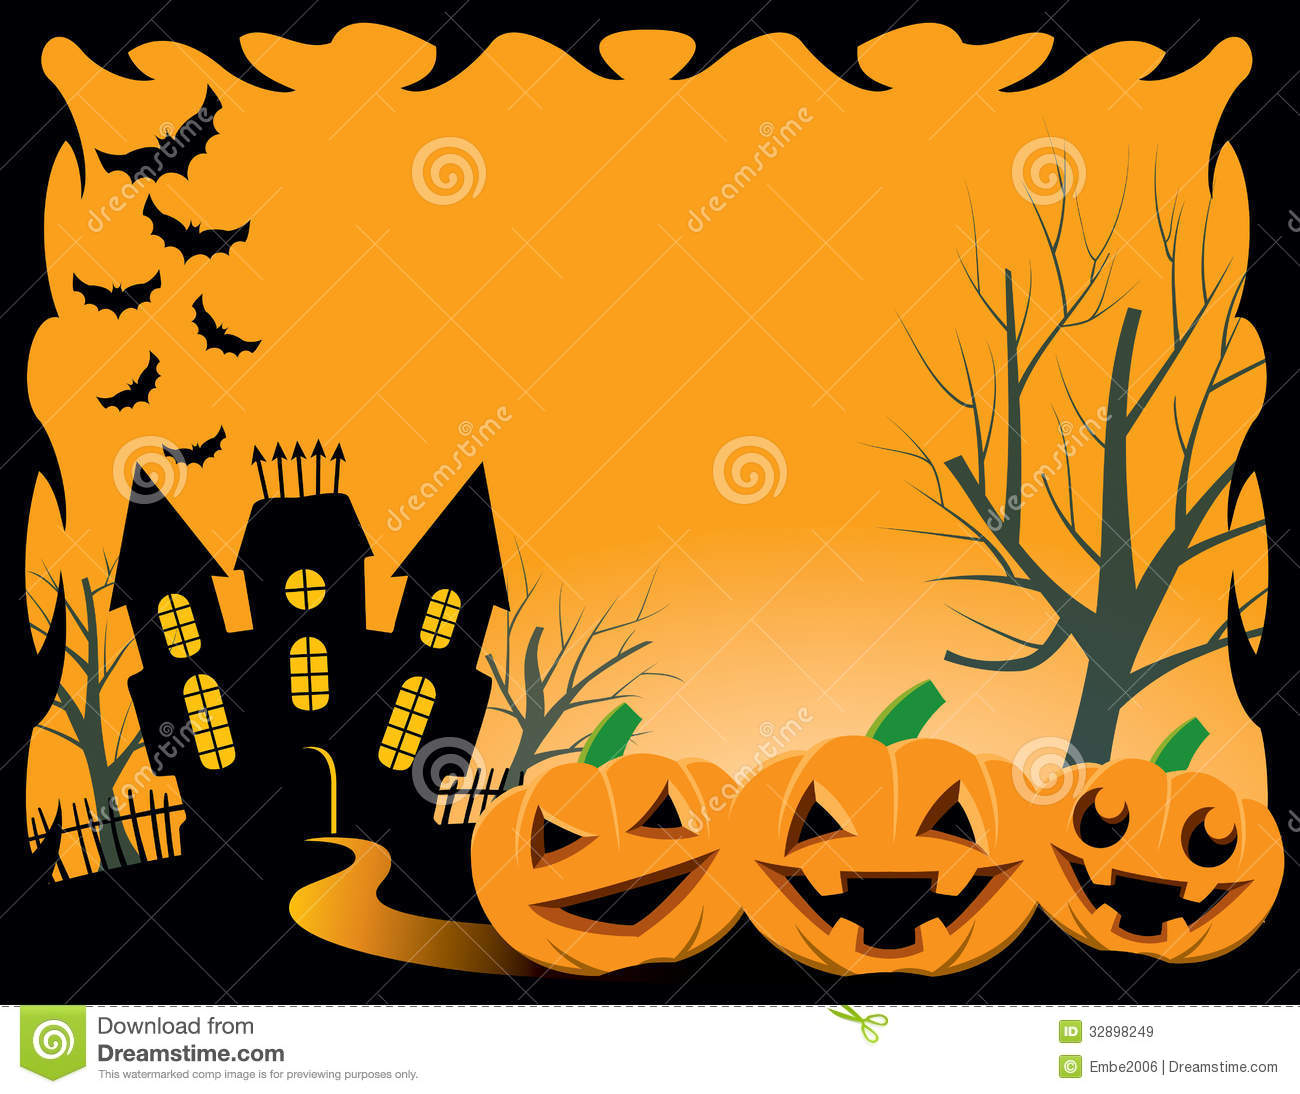 background halloween - Halloween Background Images Free